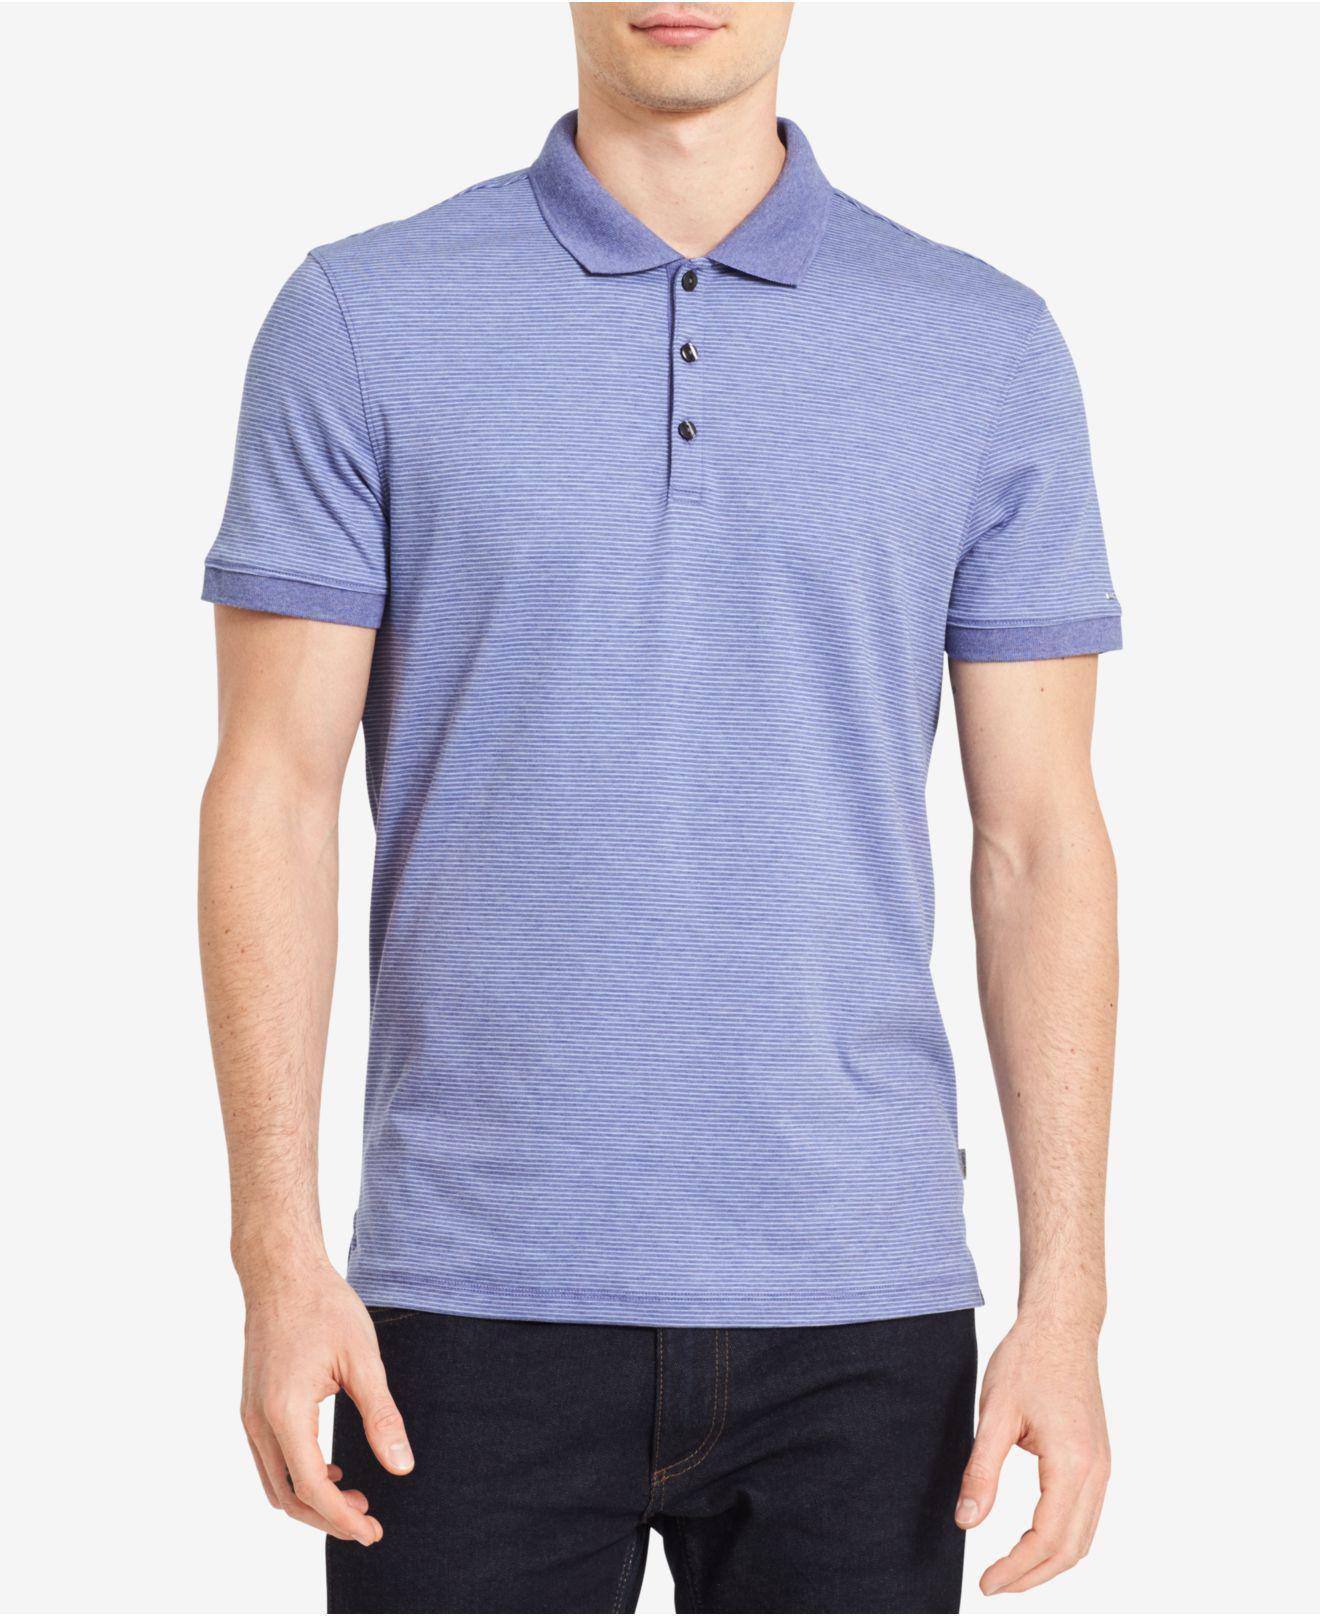 Micro Stripe Shirt Calvin Klein Hot Sale Sale Online Top Quality Clearance Shop For 8r0HiRykCc